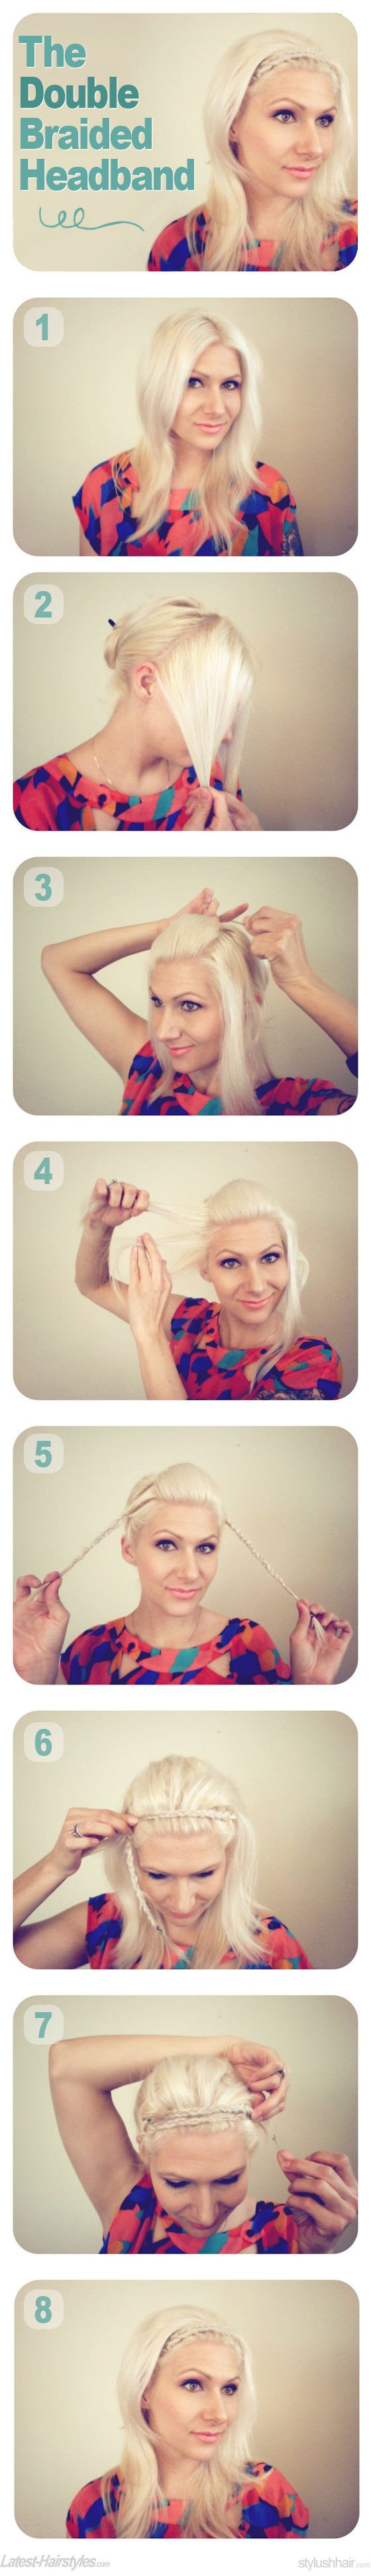 Double braided headband tutorial